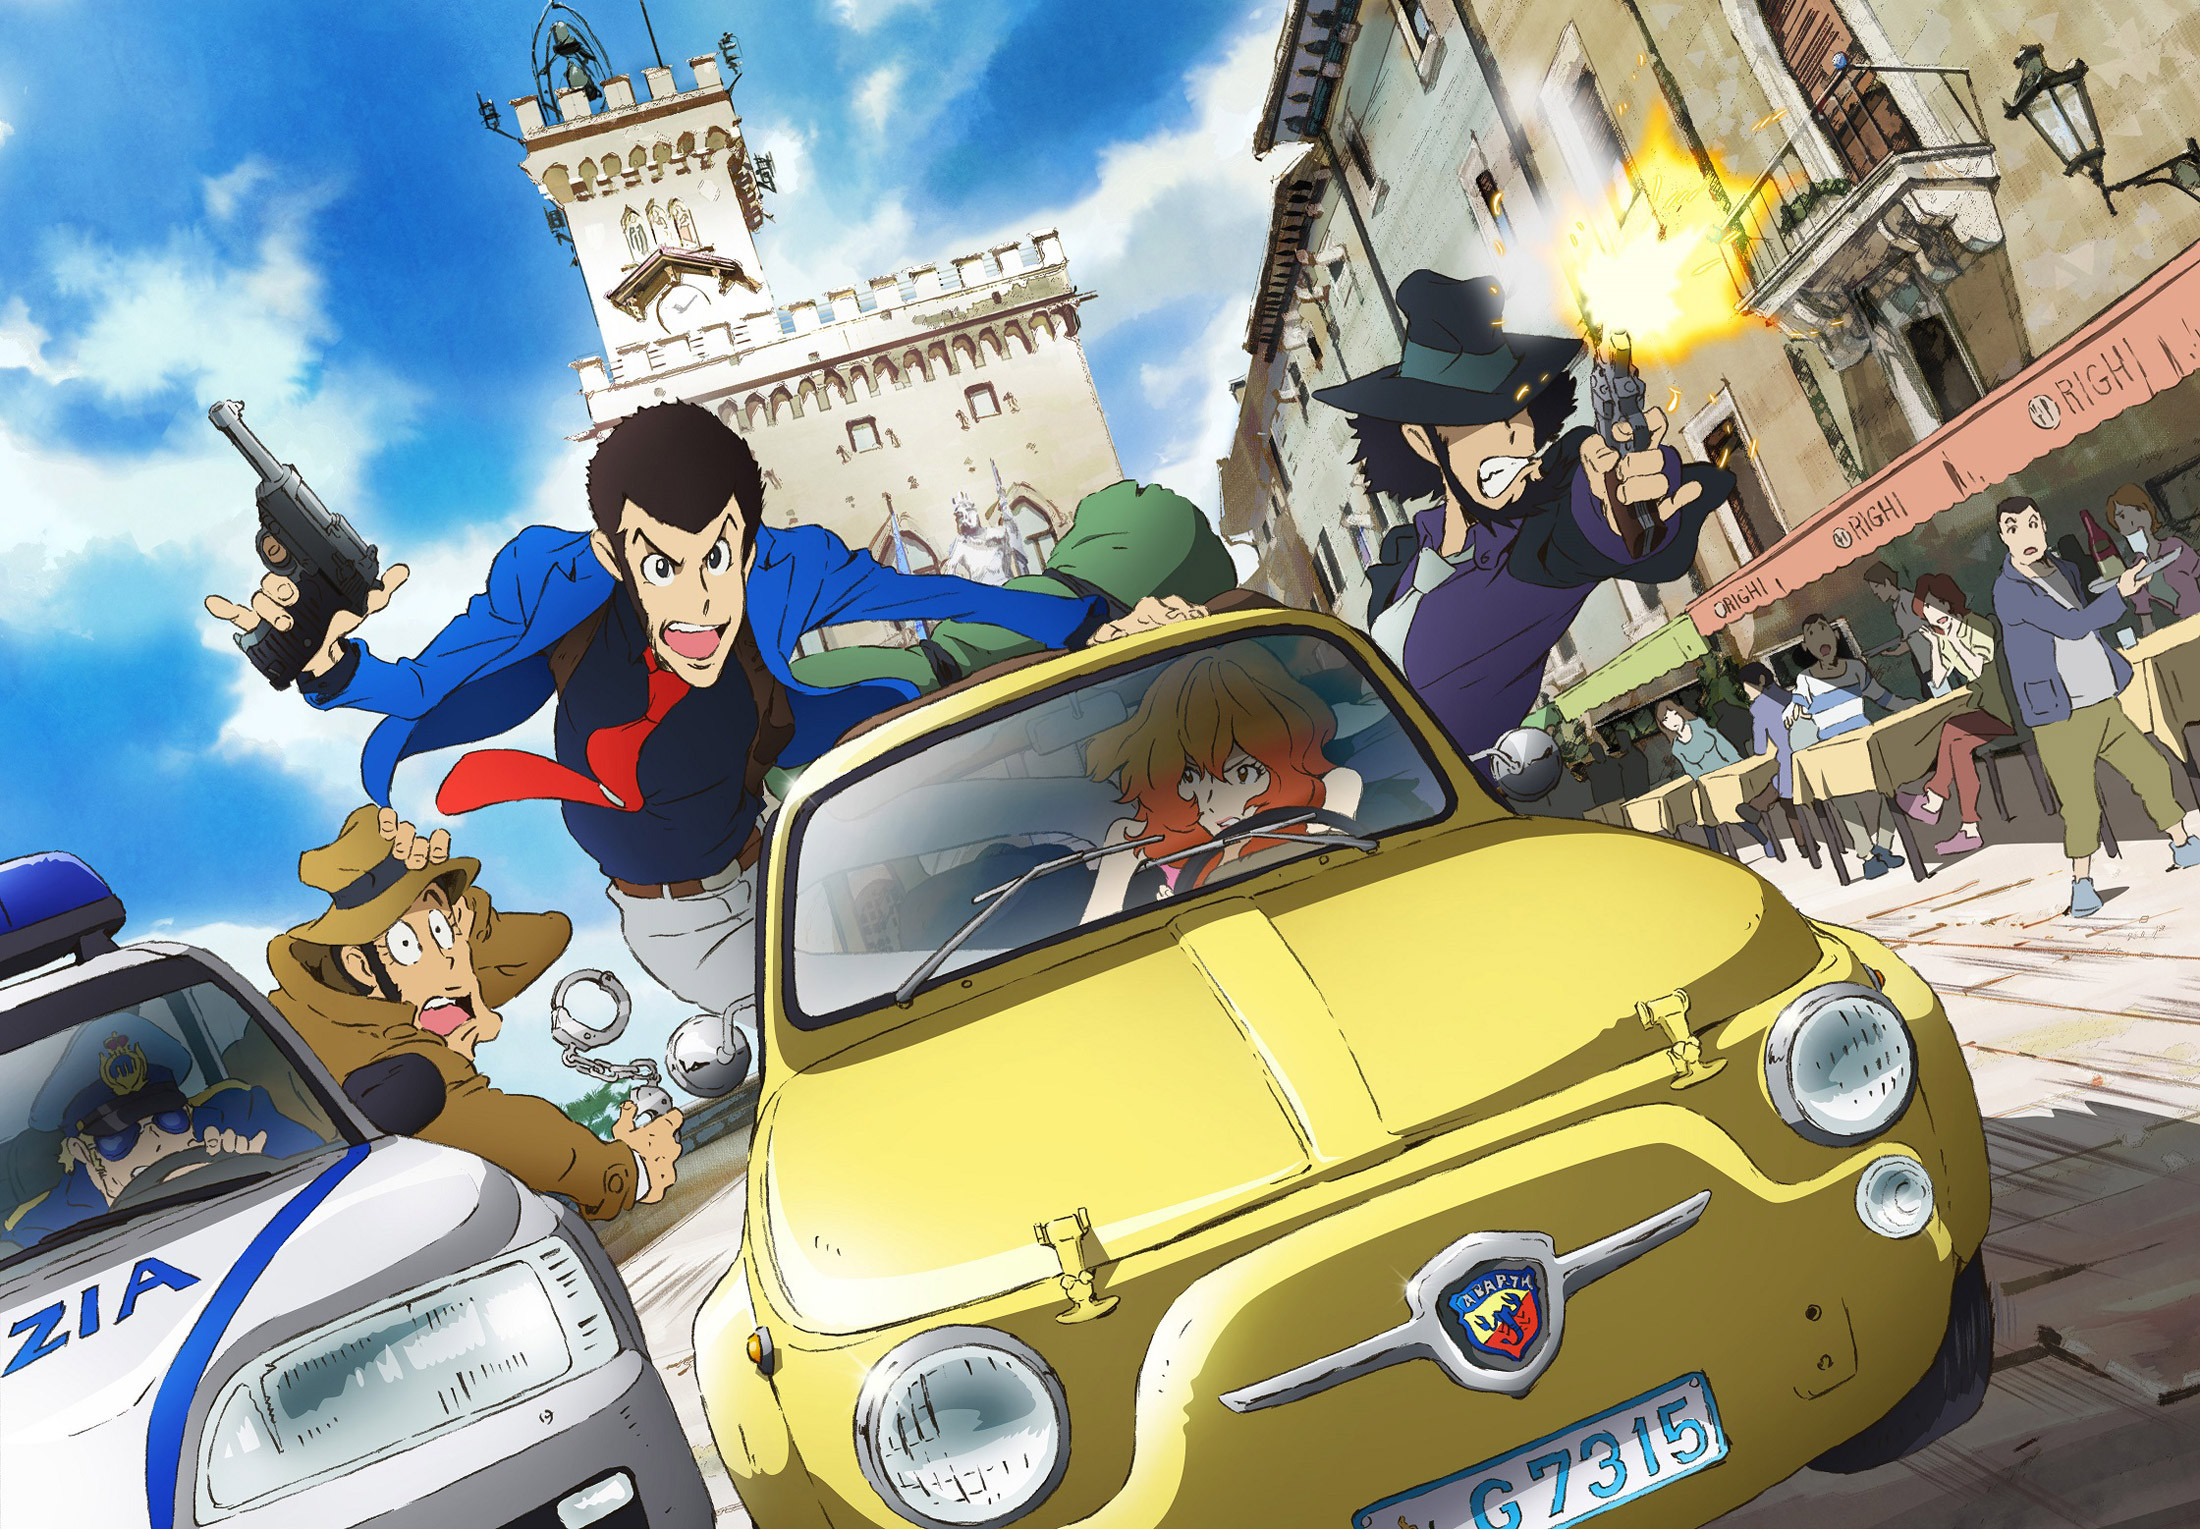 Lupin III Anime Visual Revealed